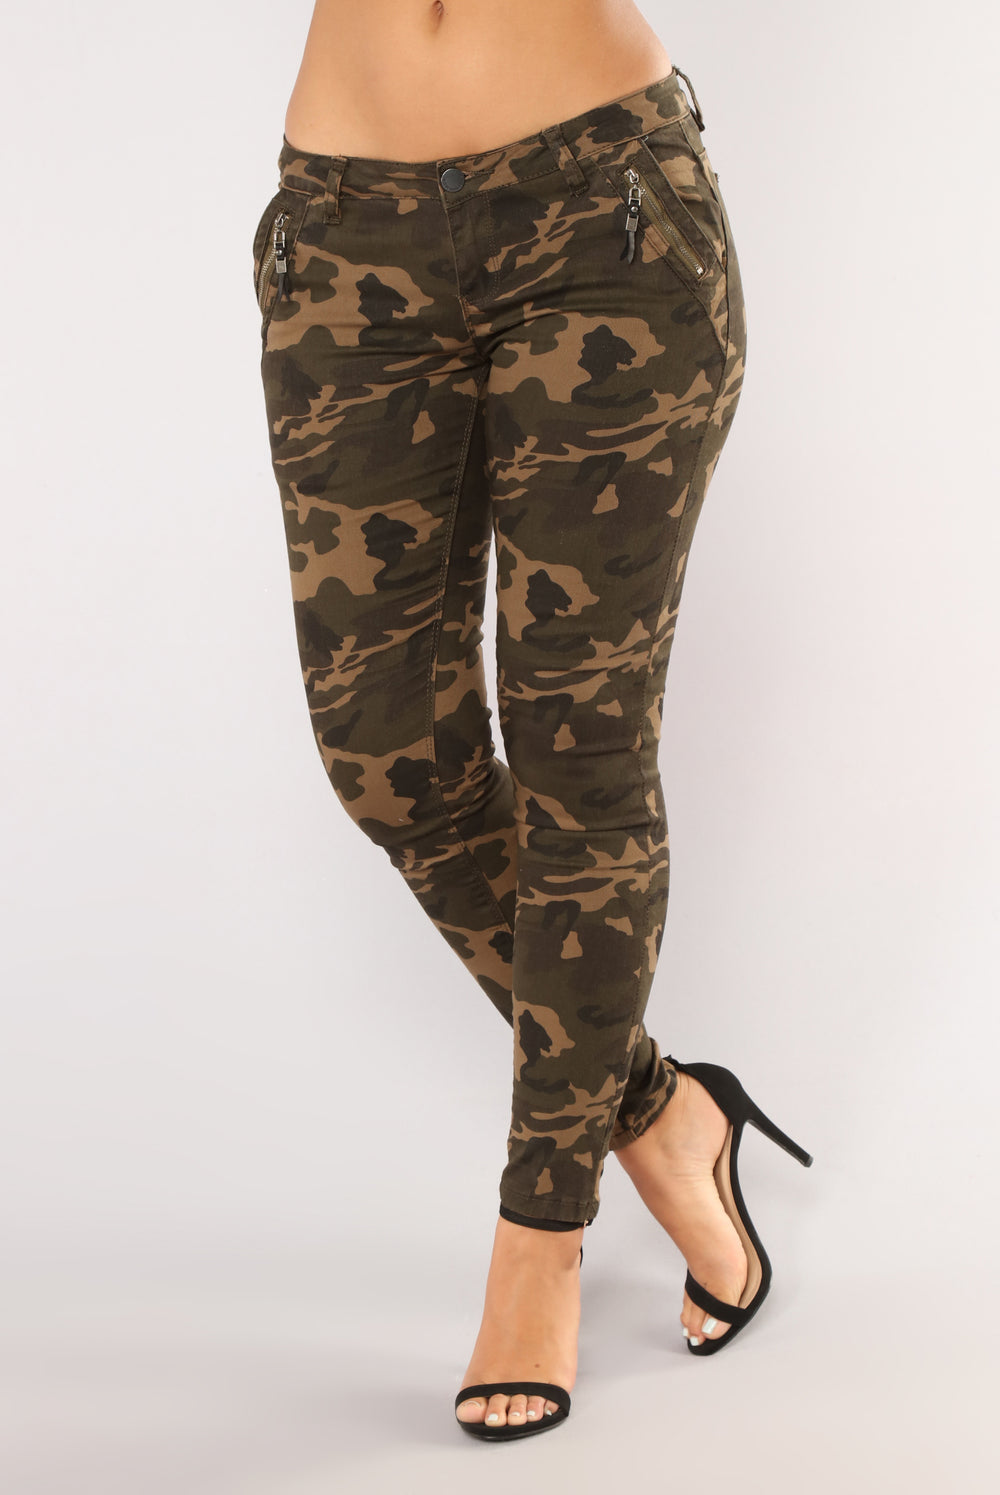 Come At Me Camo Pants - Olive